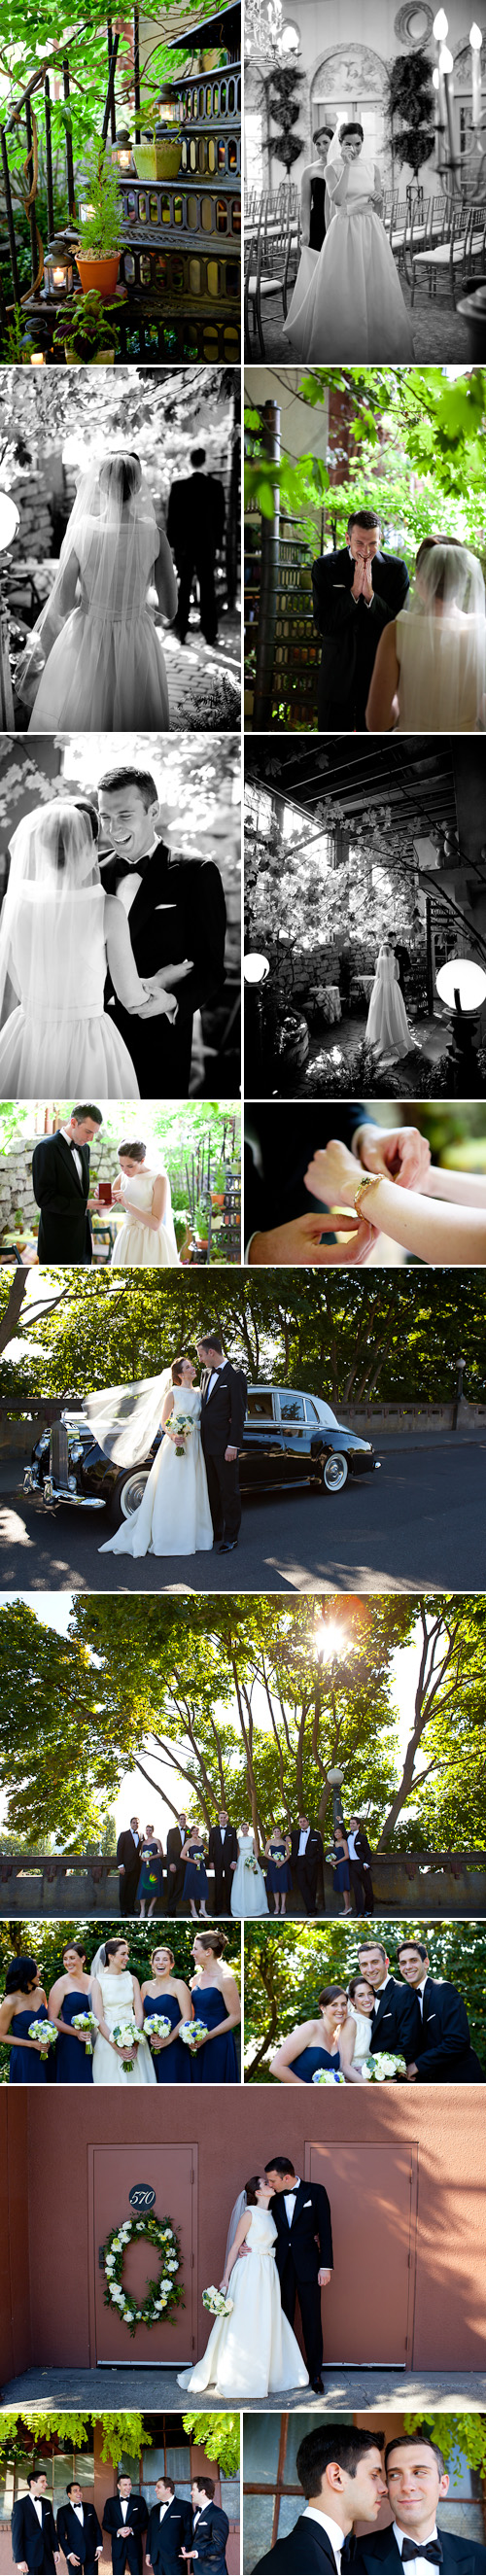 Wedding at The Ruins, photos by La Vie Photography